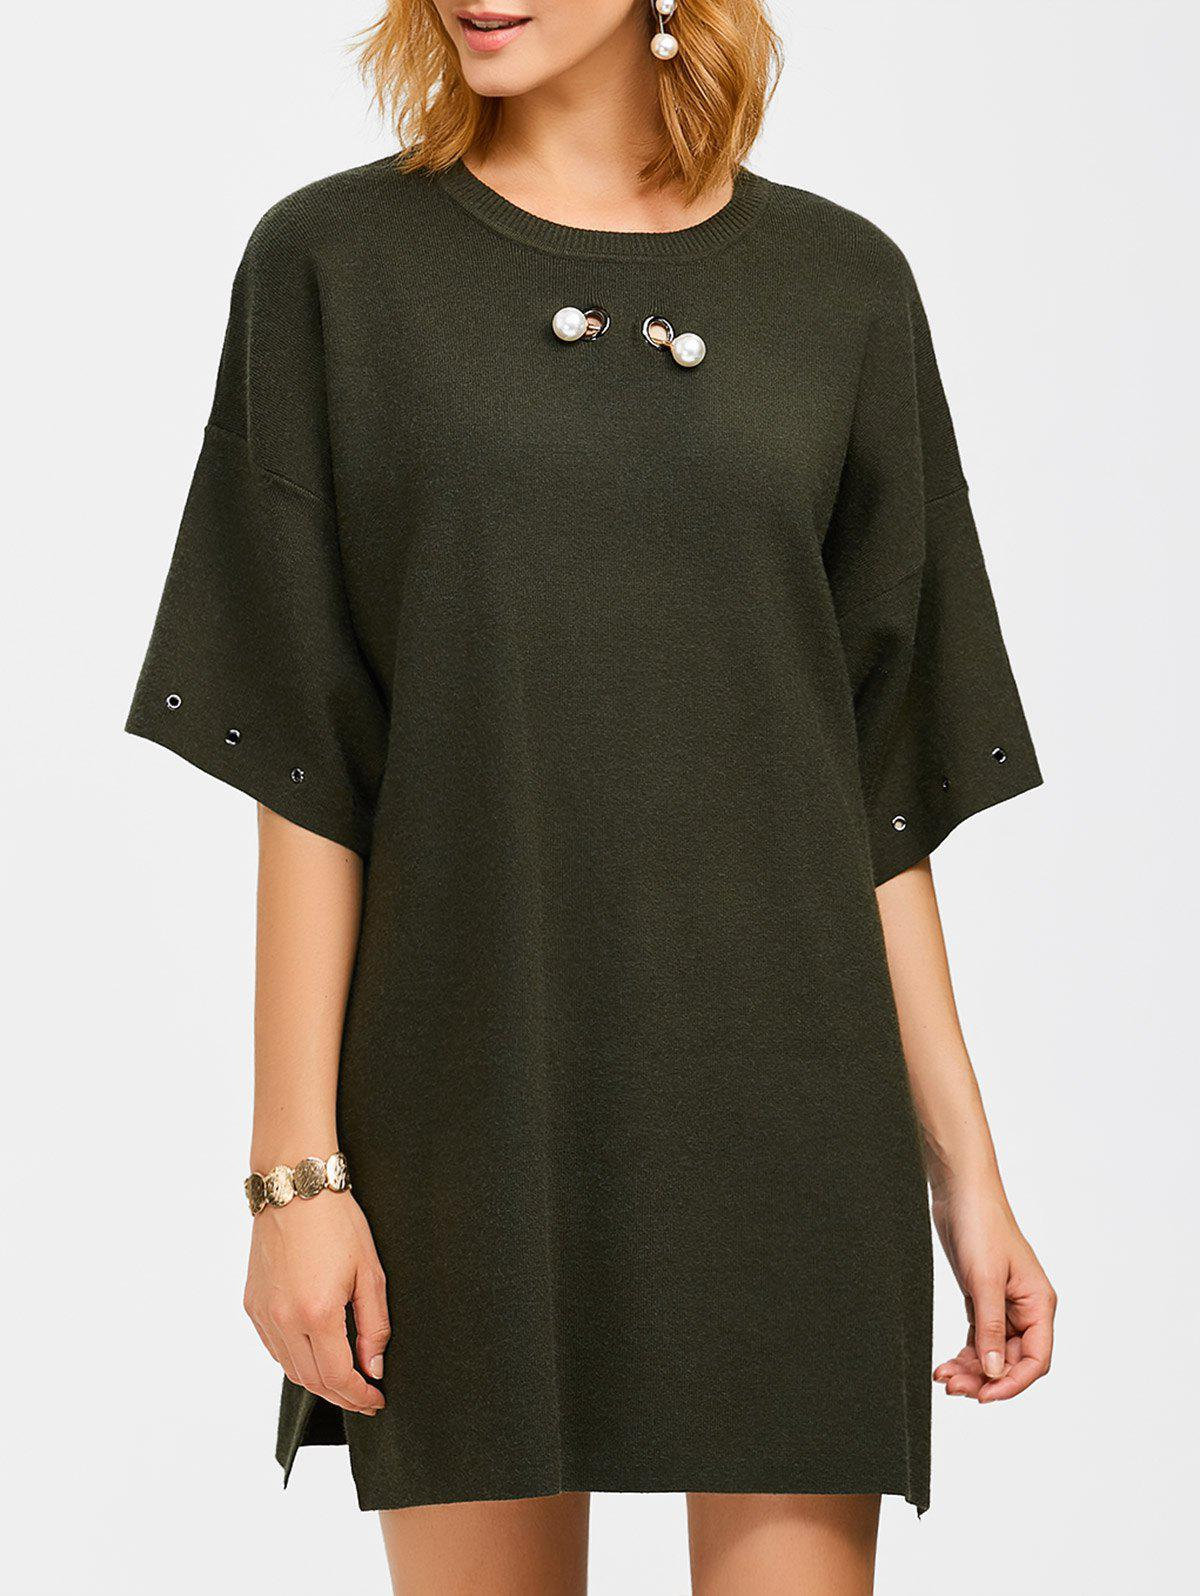 Store Crew Neck Straight Slouchy Jumper Dress